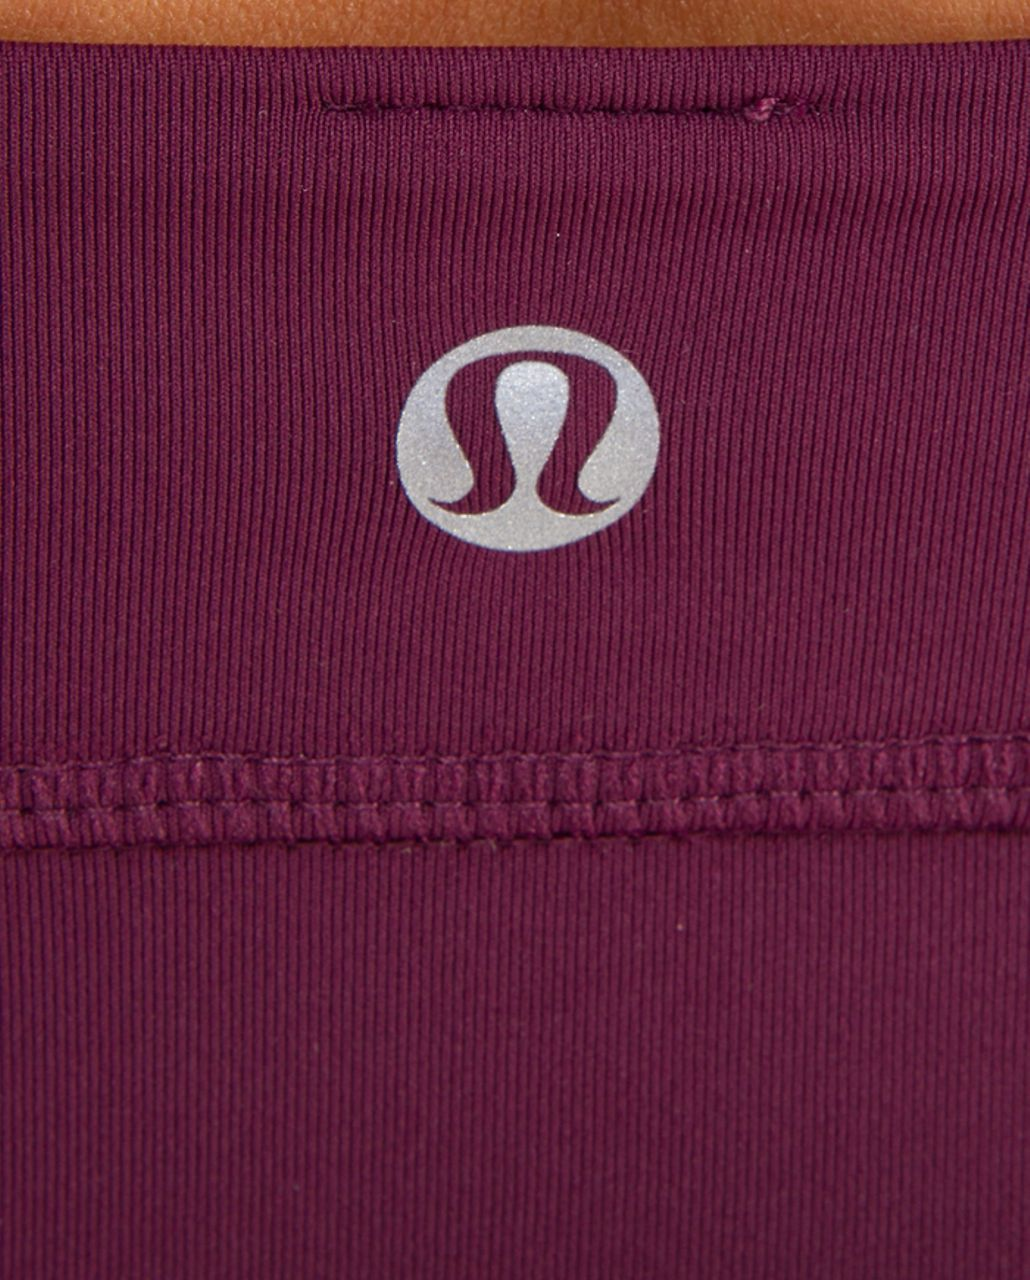 Lululemon Cross My Heart Bra - Plum